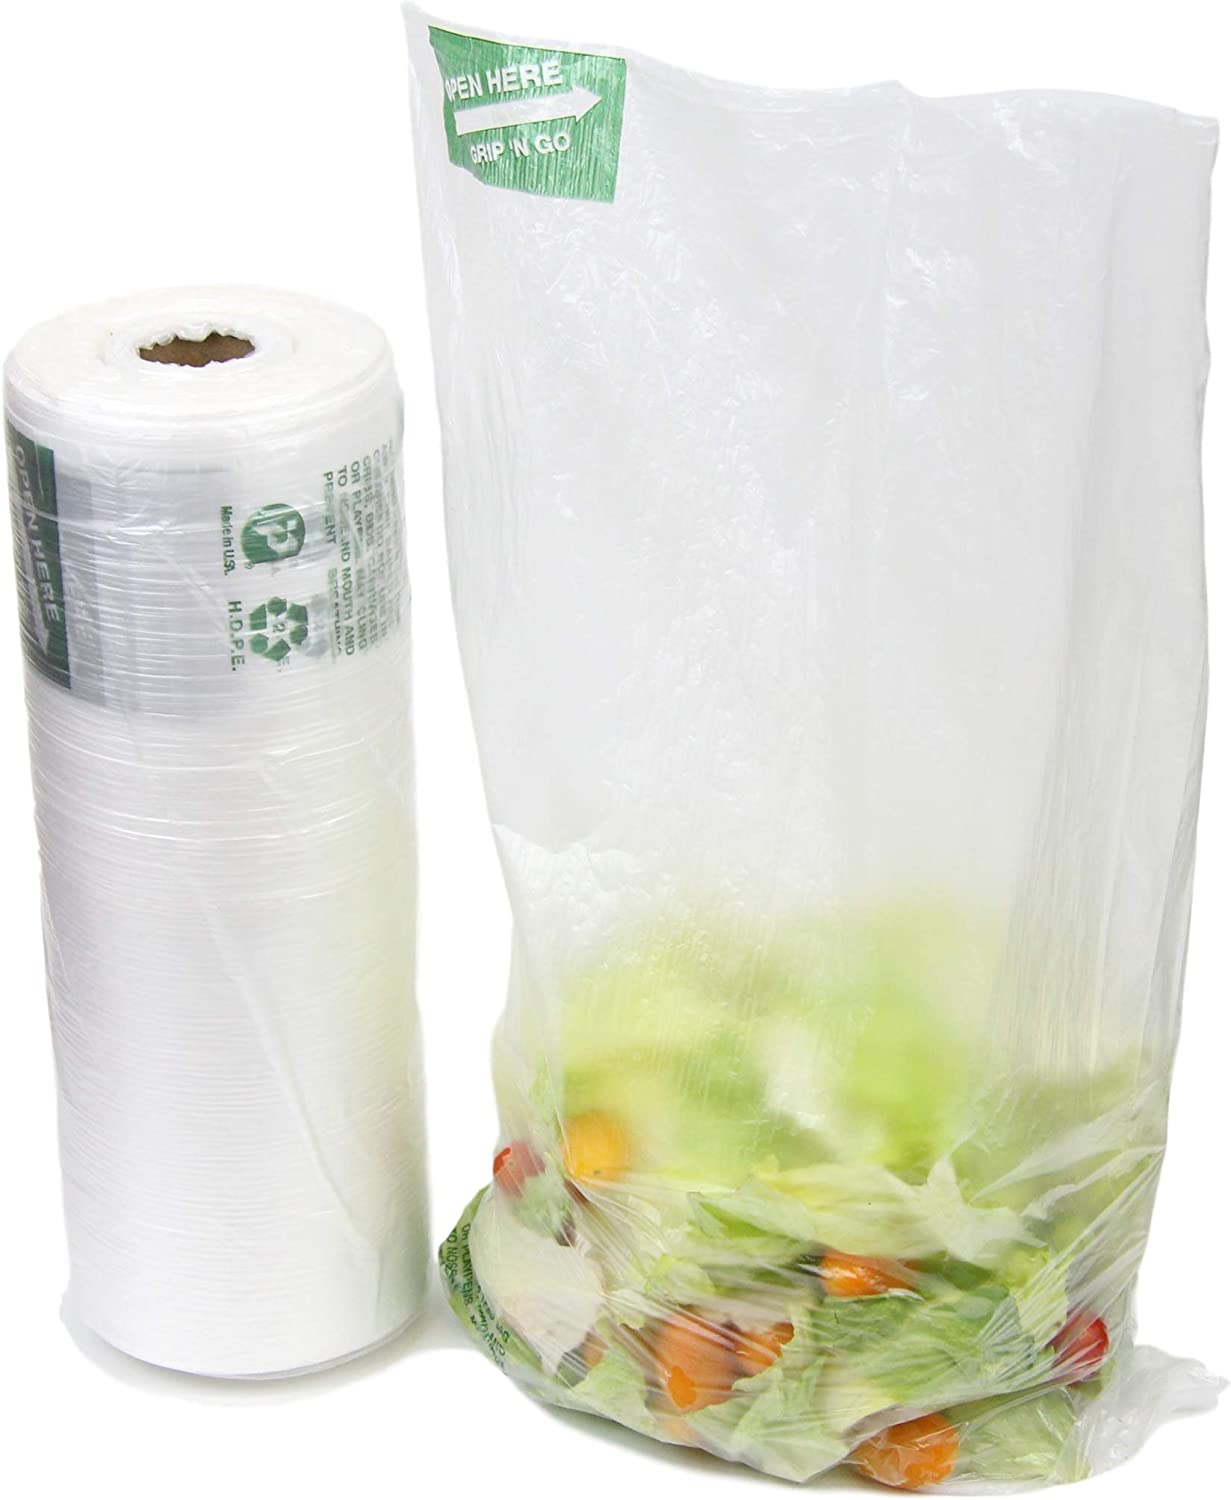 "650 Ct 12""x 20"" Large Plastic Produce Bag Roll, US Made HDPE, Durable Clear Food Storage Saver for Fruit Vegetable Bakery Snack Grocery Bags"